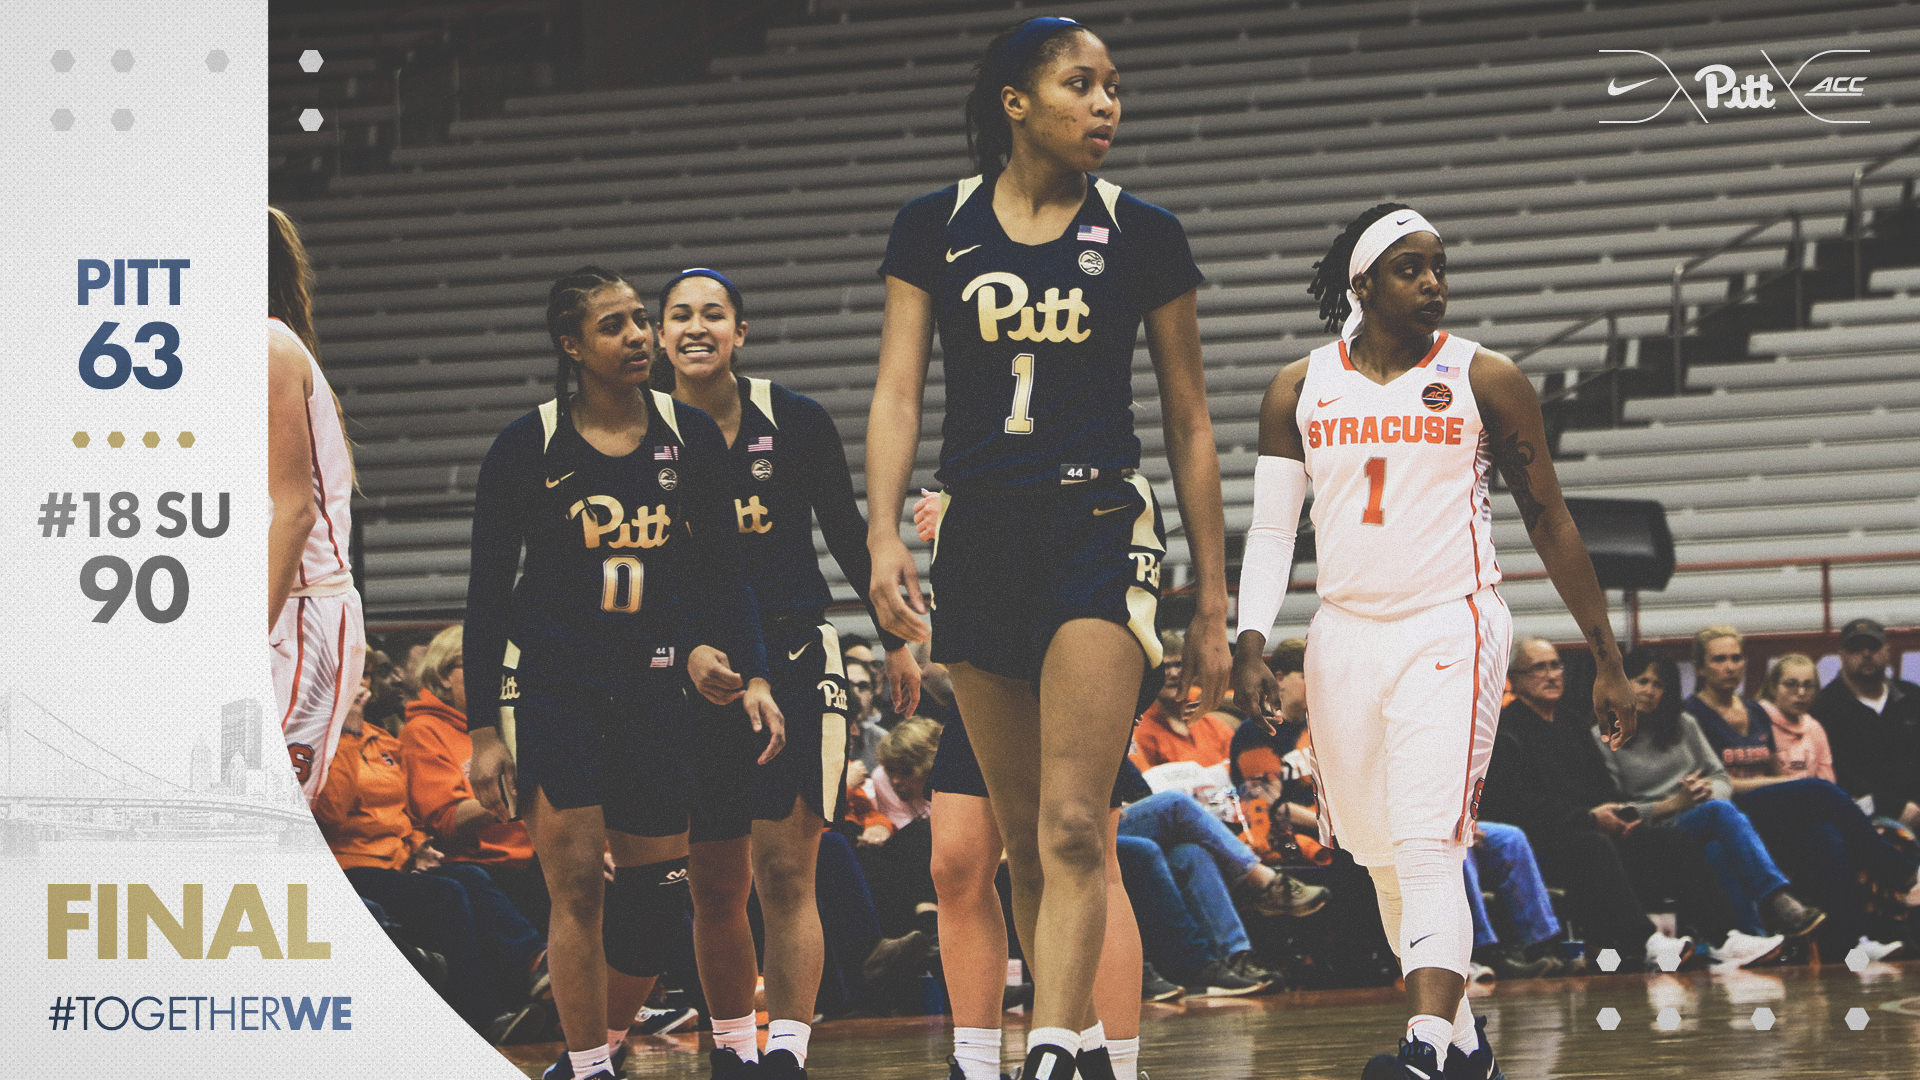 Panthers Fall On The Road To 18 Syracuse Pitt Panthers H2p